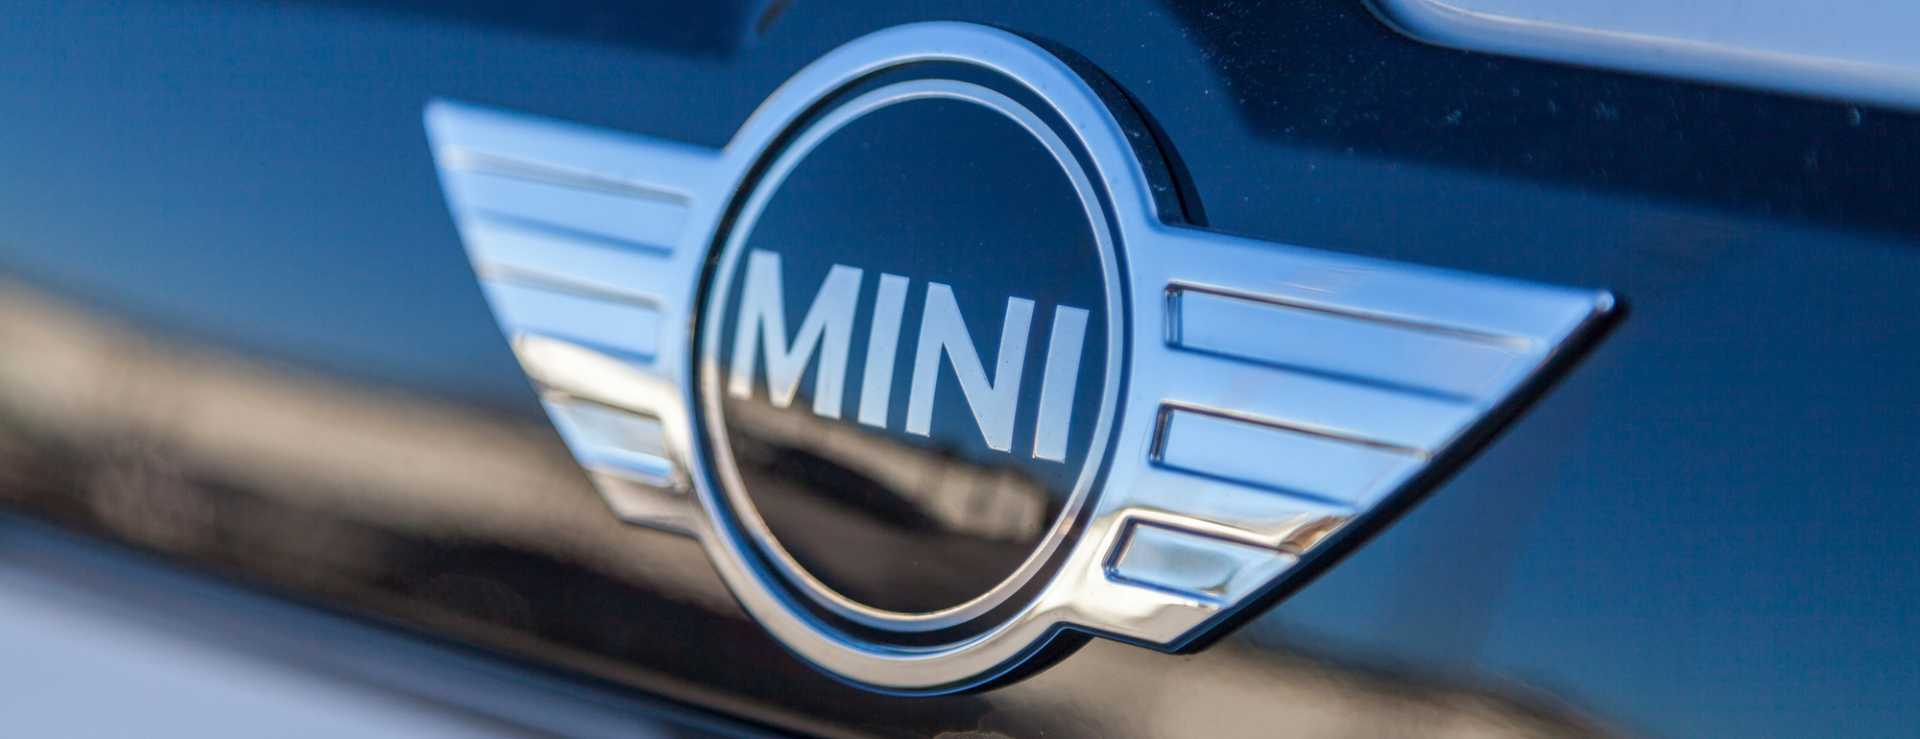 CROP - MINI logo - image courtesy of Depositphotos.